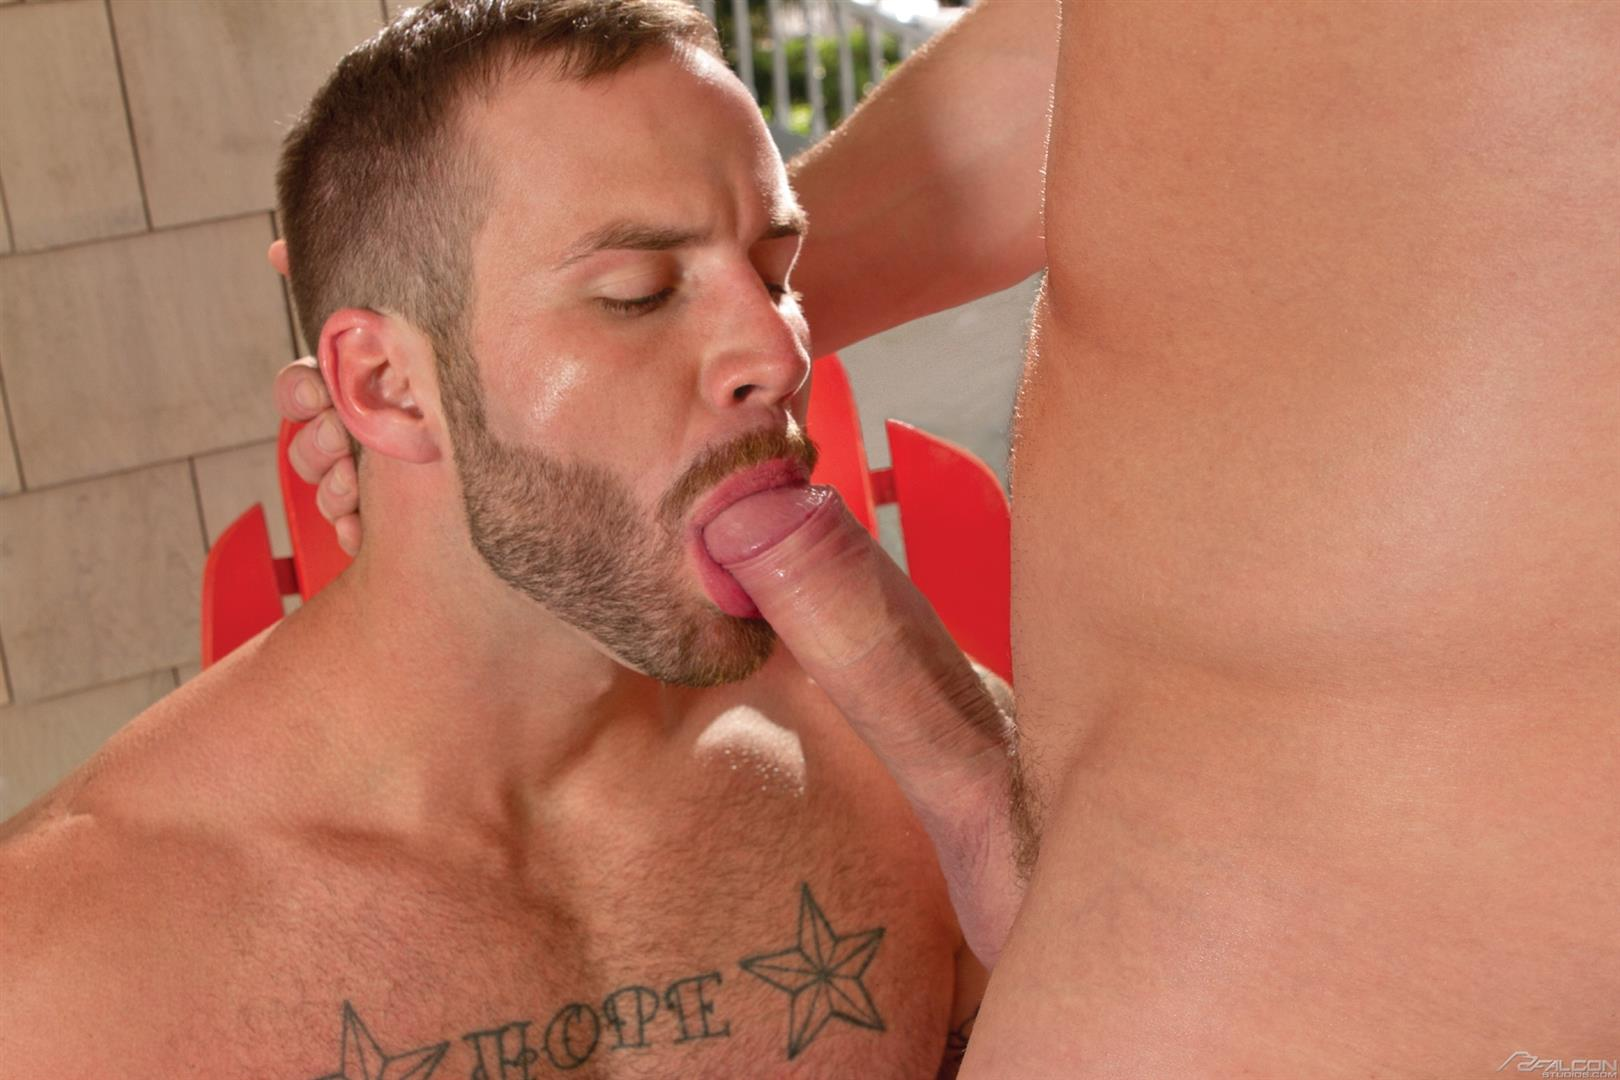 Falcon-Studios-Chris-Bines-and-Nikko-Russo-Muscle-Hunks-Sucking-Big-Uncut-Cocks-Cum-Amateur-Gay-Porn-07 Amateur Muscle Jocks Sucking On Big Uncut Cock